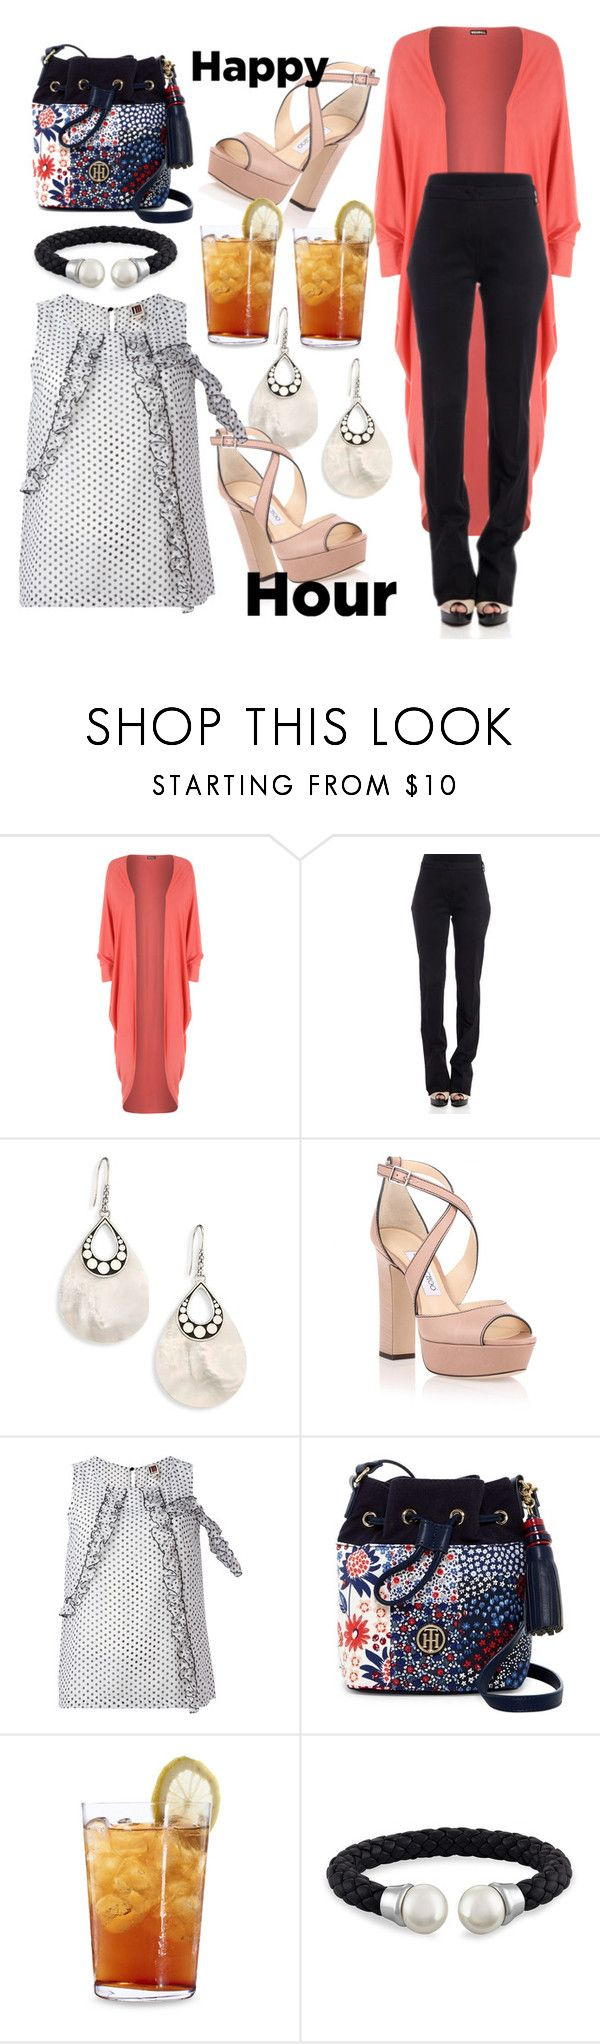 """""""Happy Hour"""" by lustydame ❤ liked on Polyvore featuring WearAll, Pinko, John Hardy, Jimmy Choo, I'm Isola Marras, Tommy Hilfiger, Schott Zwiesel and Majorica"""